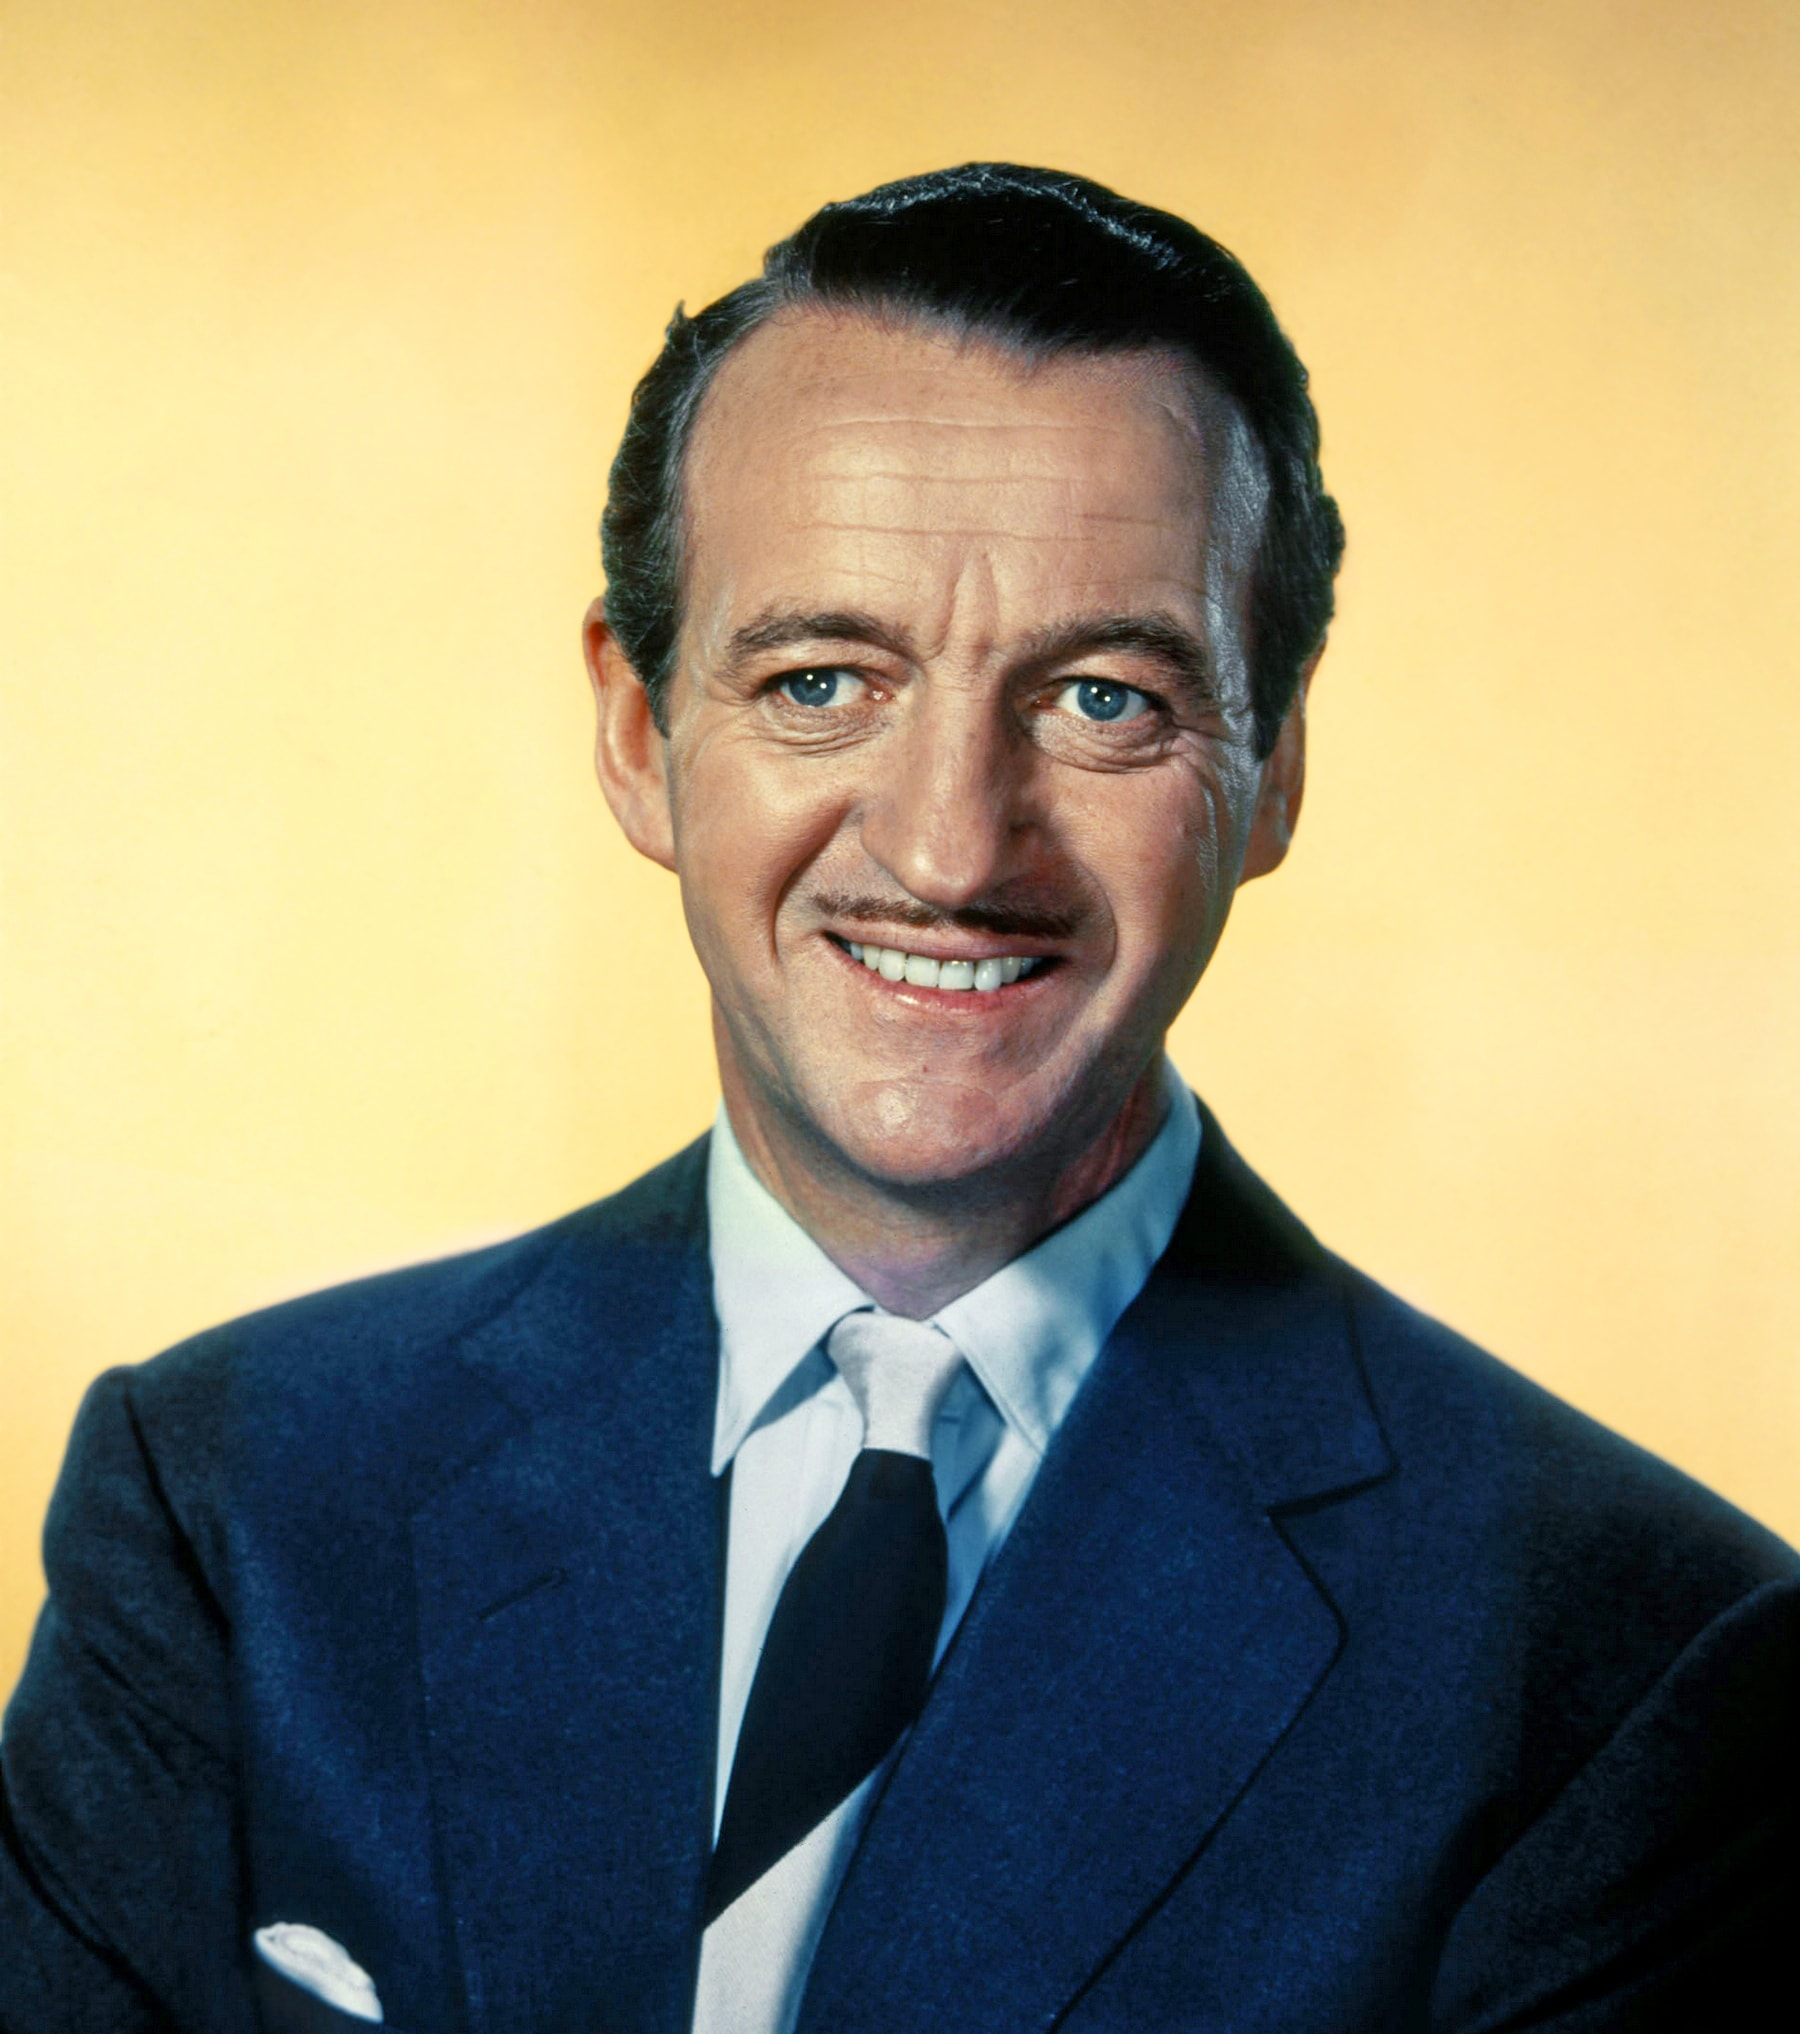 David Niven Wallpapers